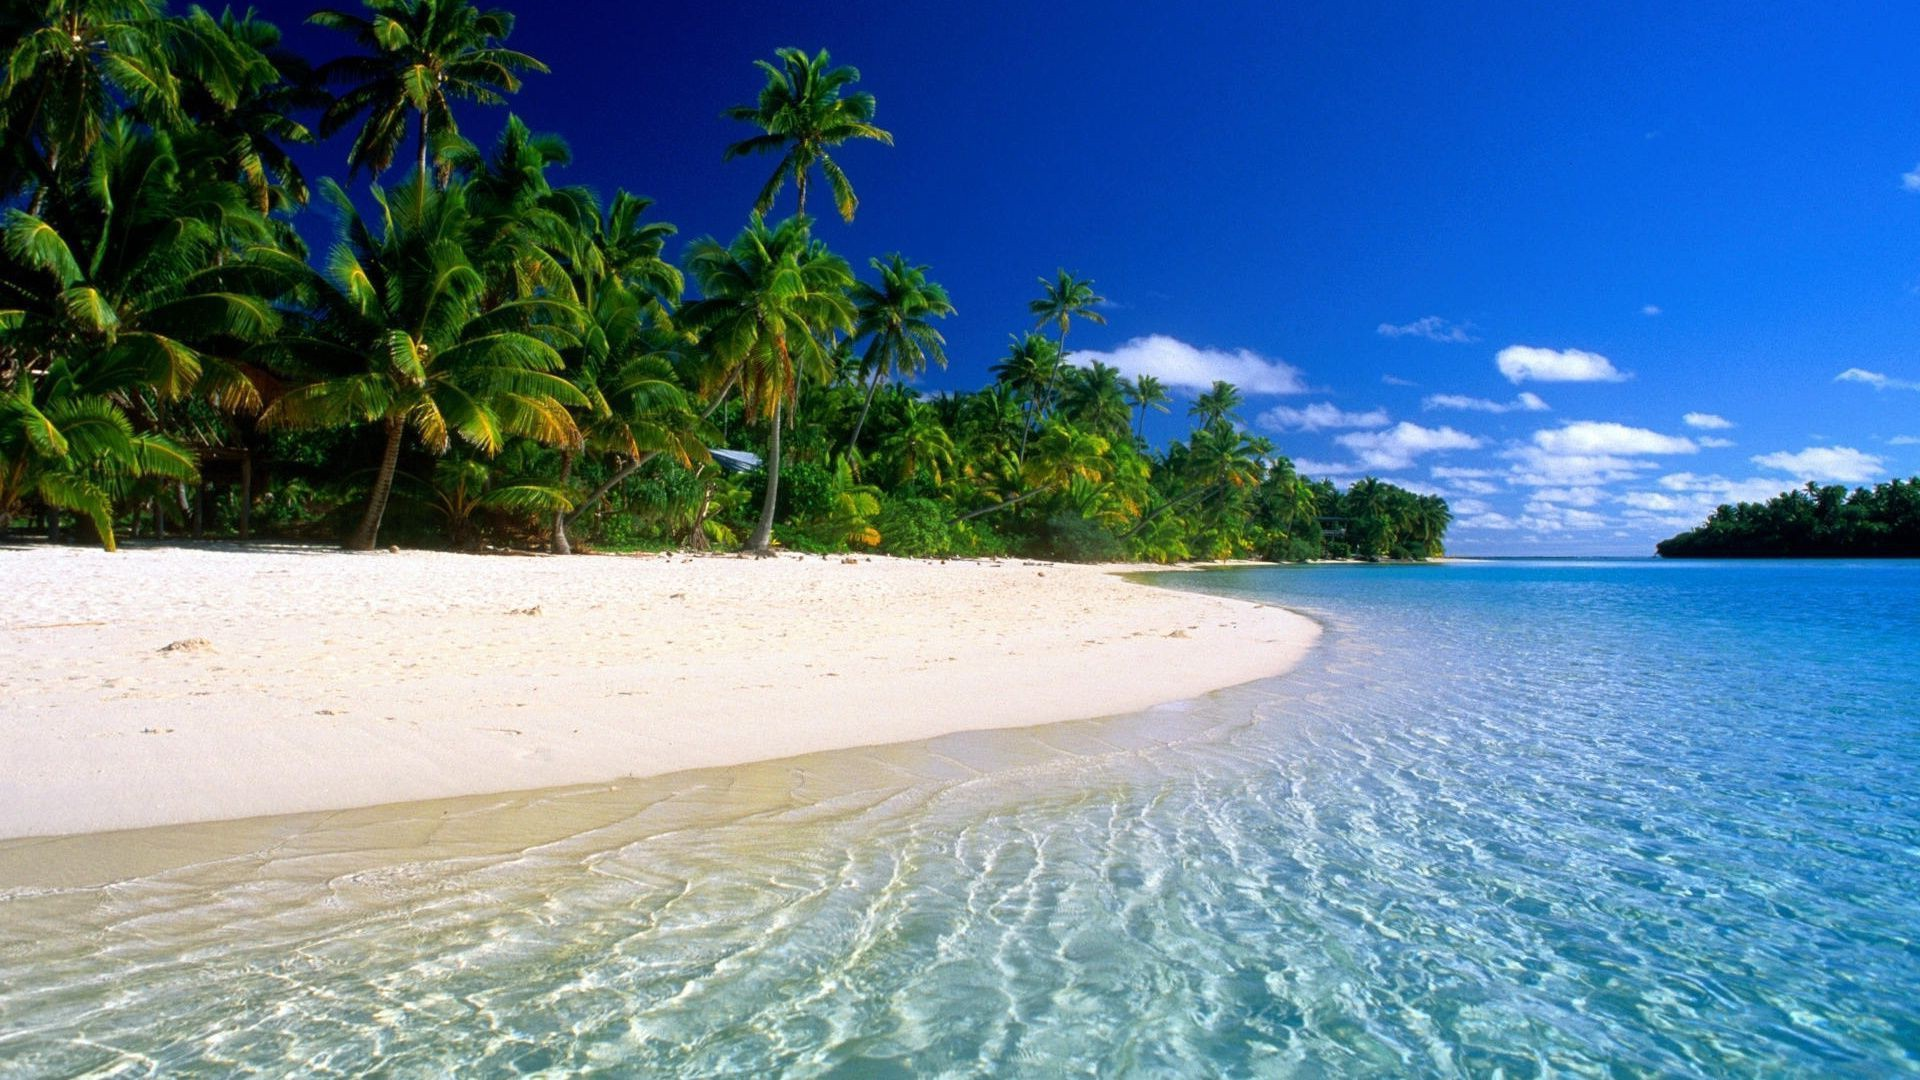 Hd Tropical Island Beach Paradise Wallpapers And Backgrounds: Tropical Beach Paradise 1920×1080